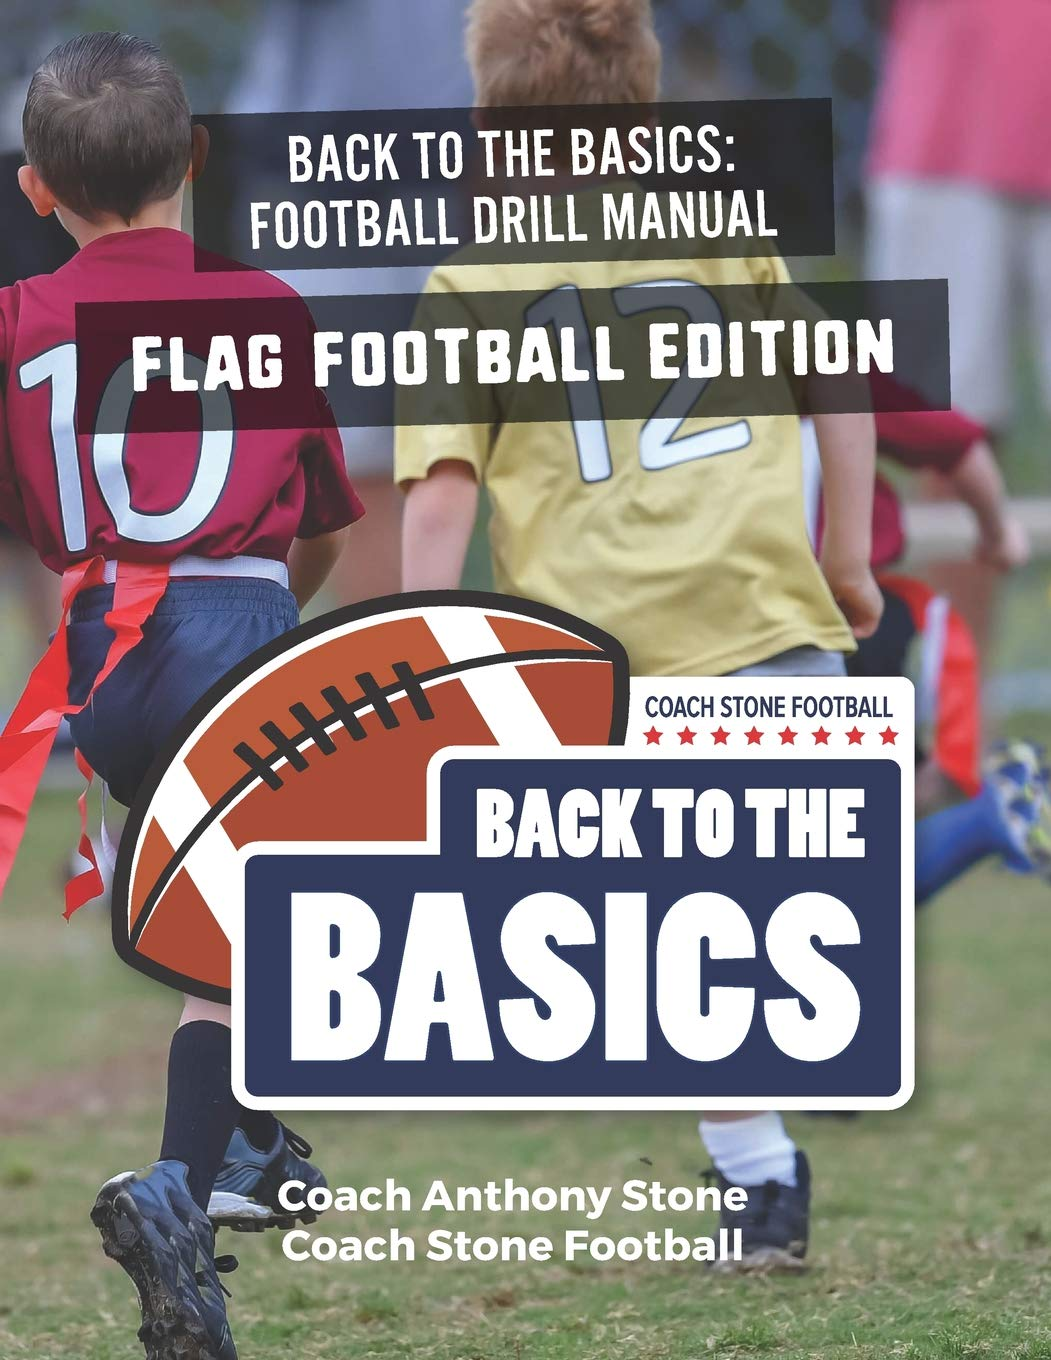 Back To The Basics Football Drill Manual: Flag Football Edition